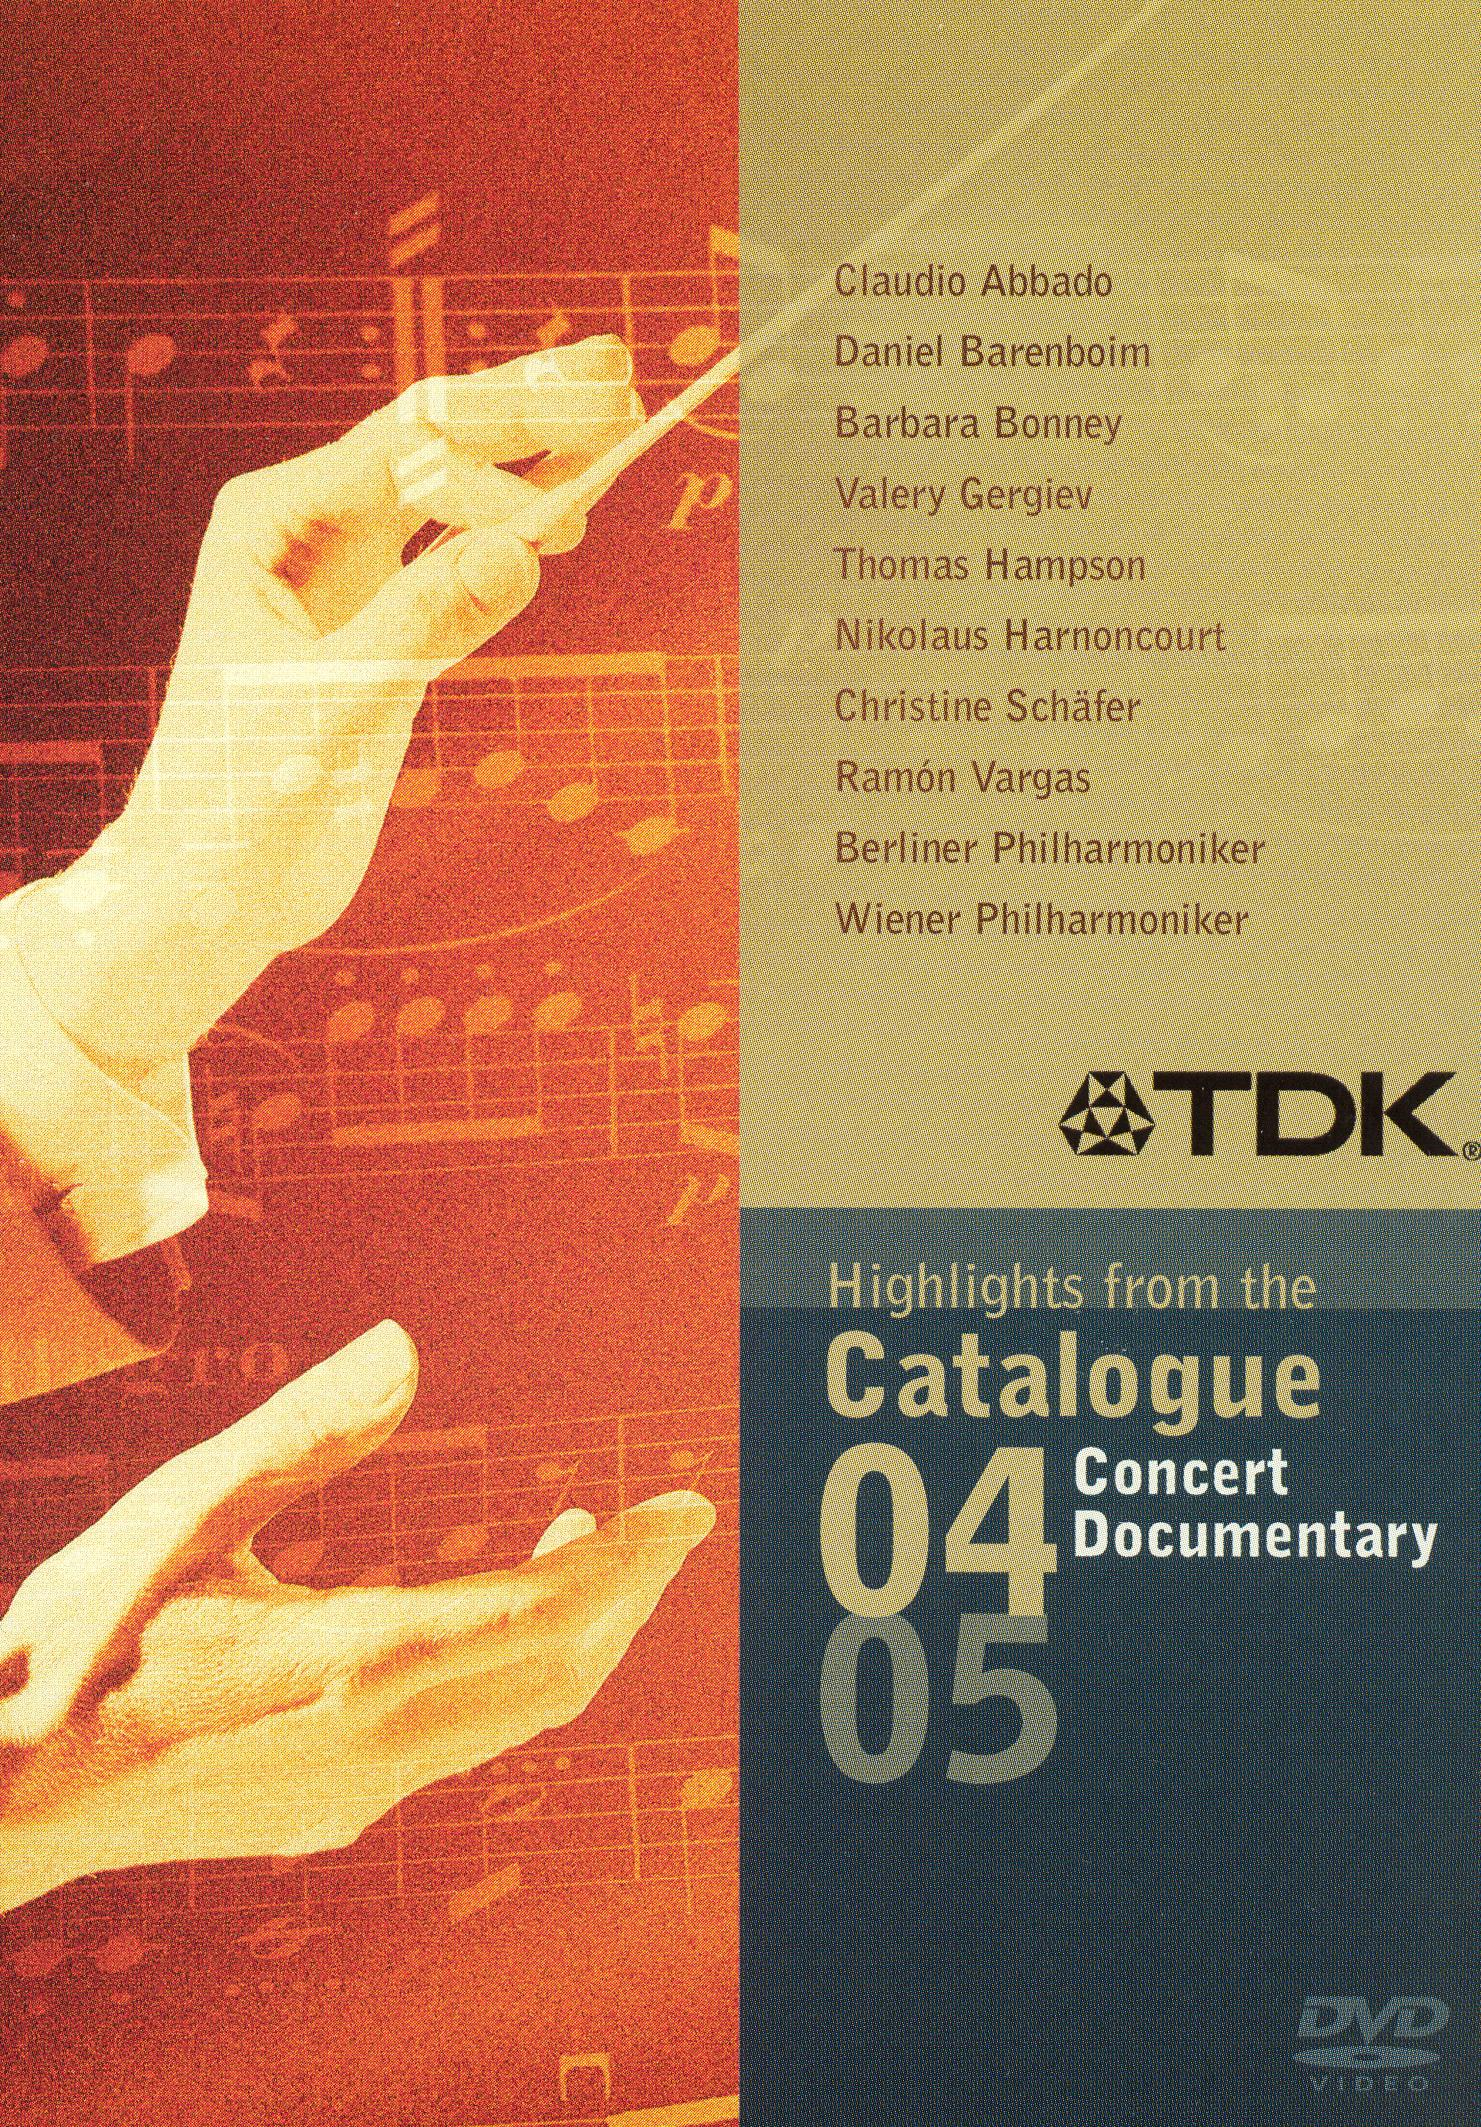 Highlights From the Catalogue 04/05: Concert & Documentary